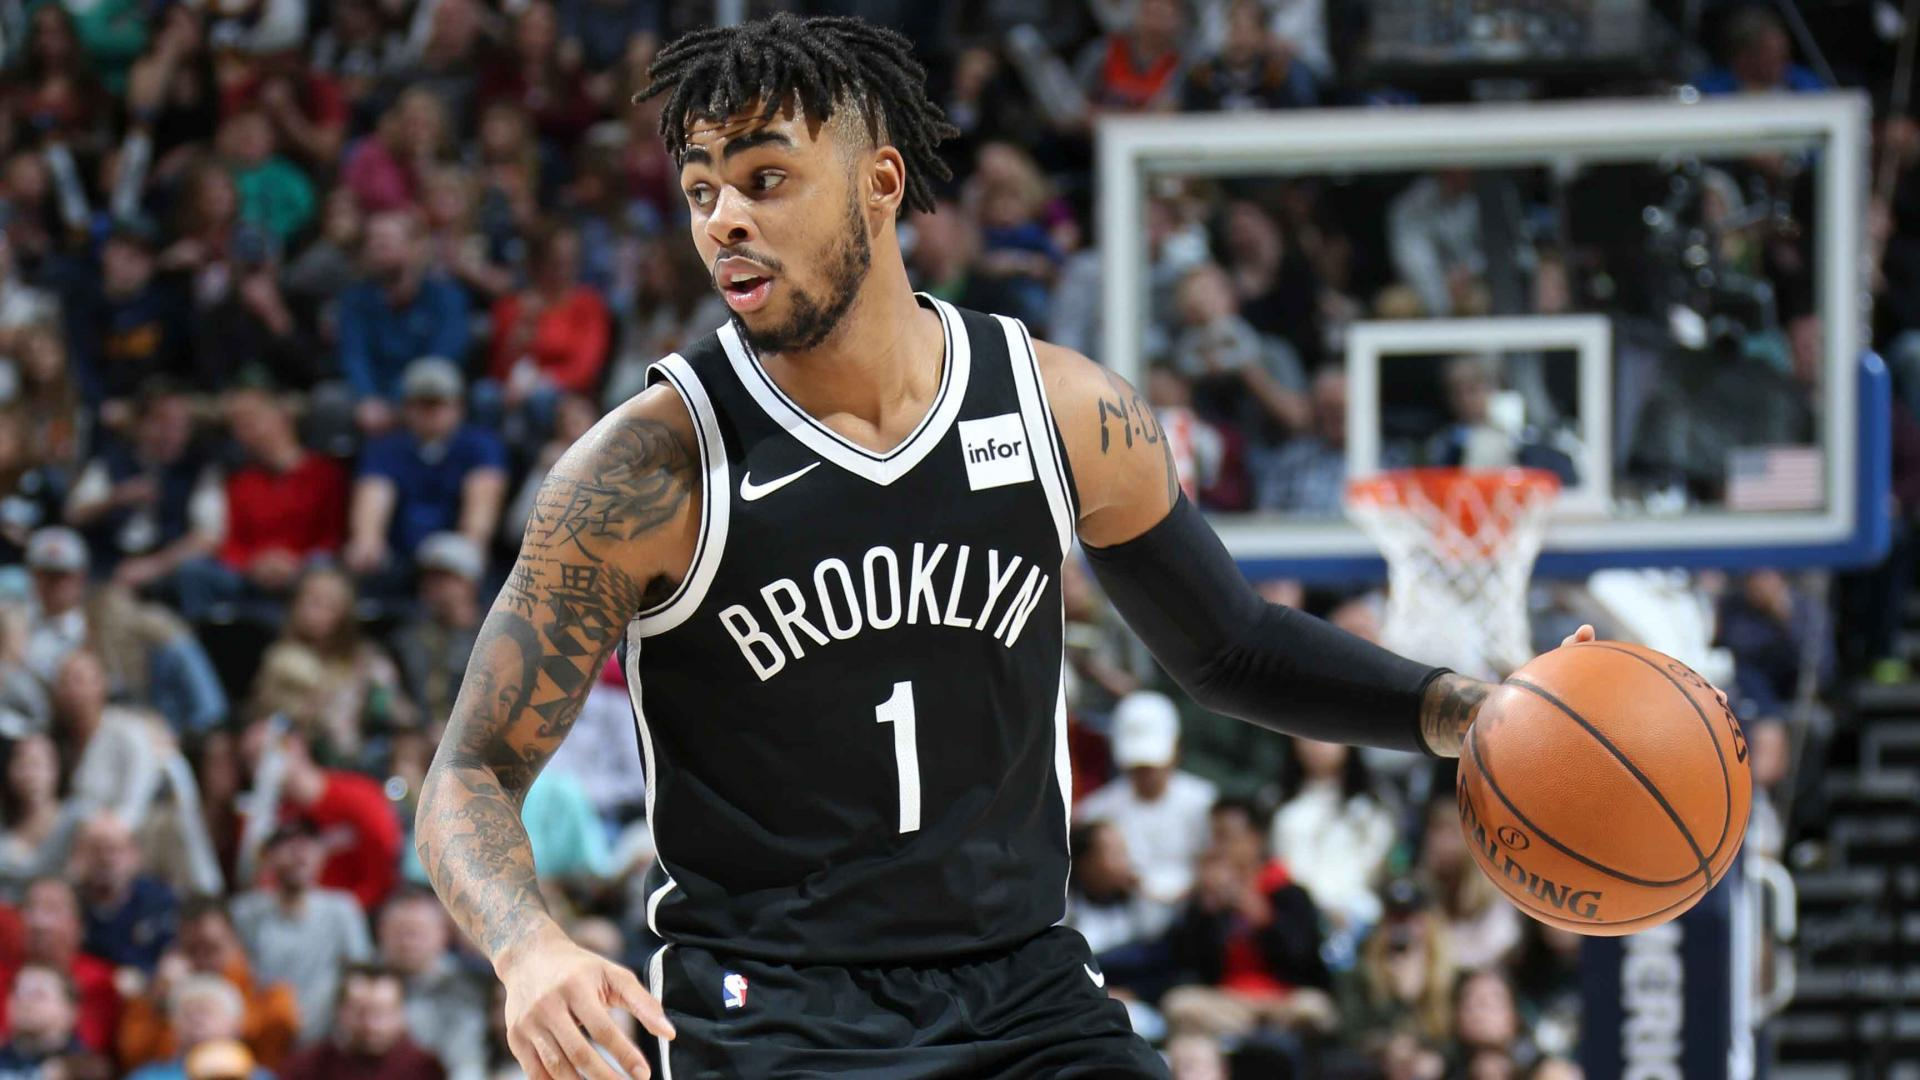 「D'Angelo Russell」の画像検索結果